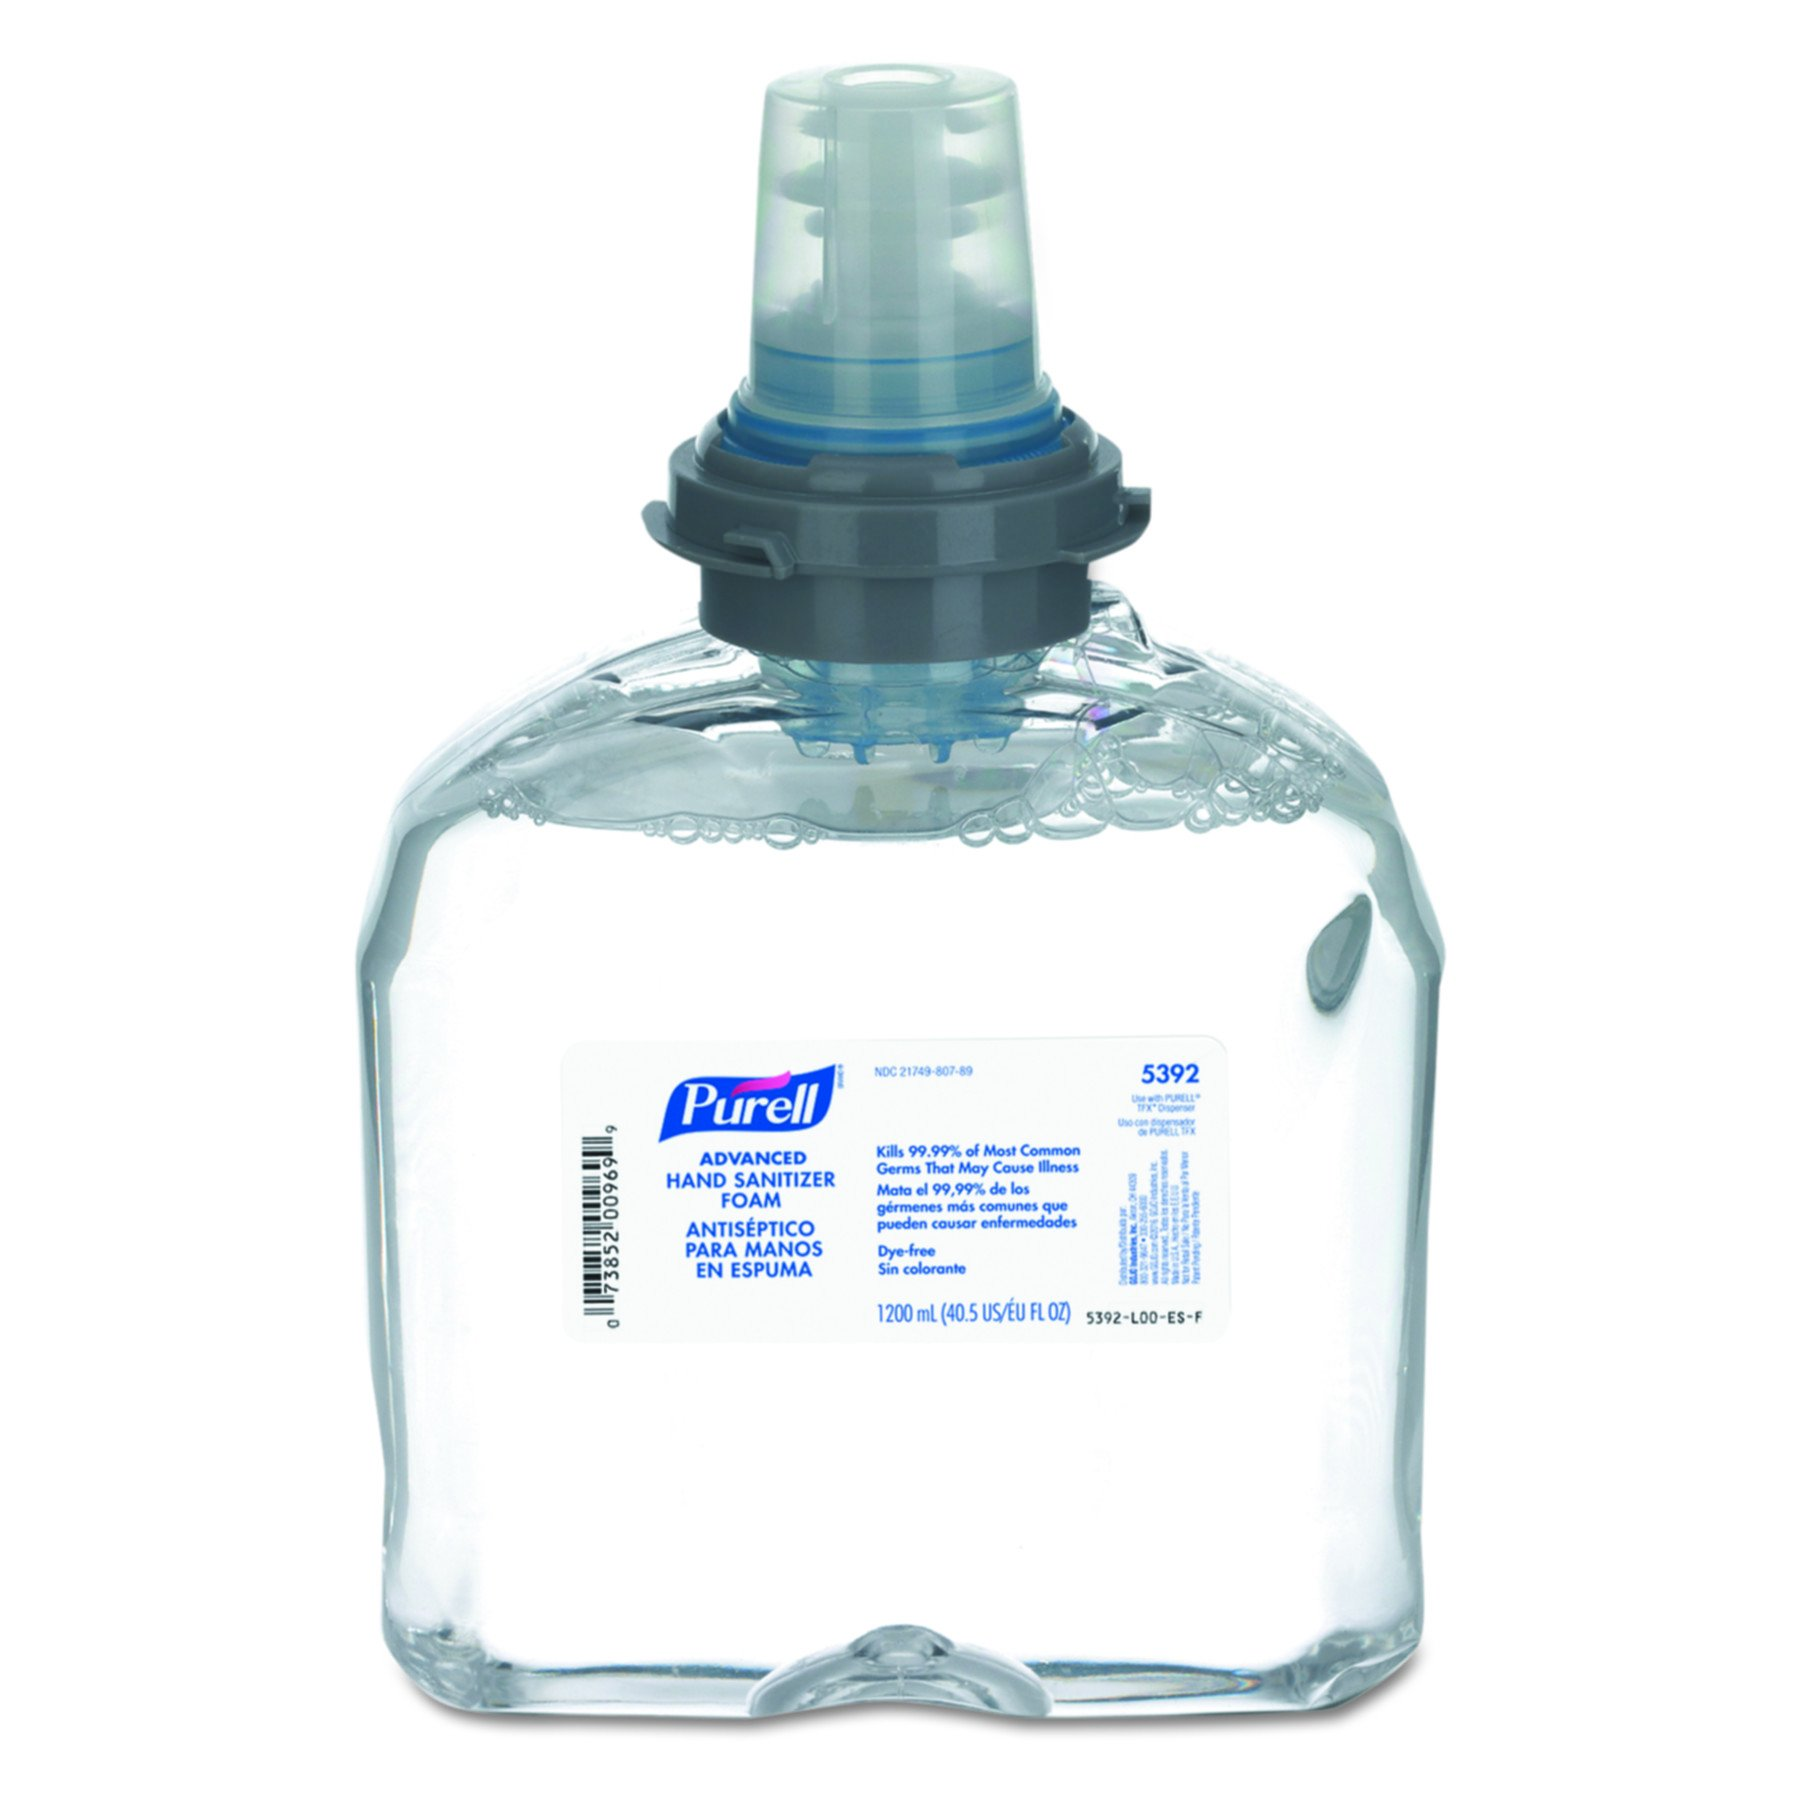 PURELL 5392-02 Advanced TFX Foam Instant Hand Sanitizer Refill - 1200mL, Clear (Case of 2)